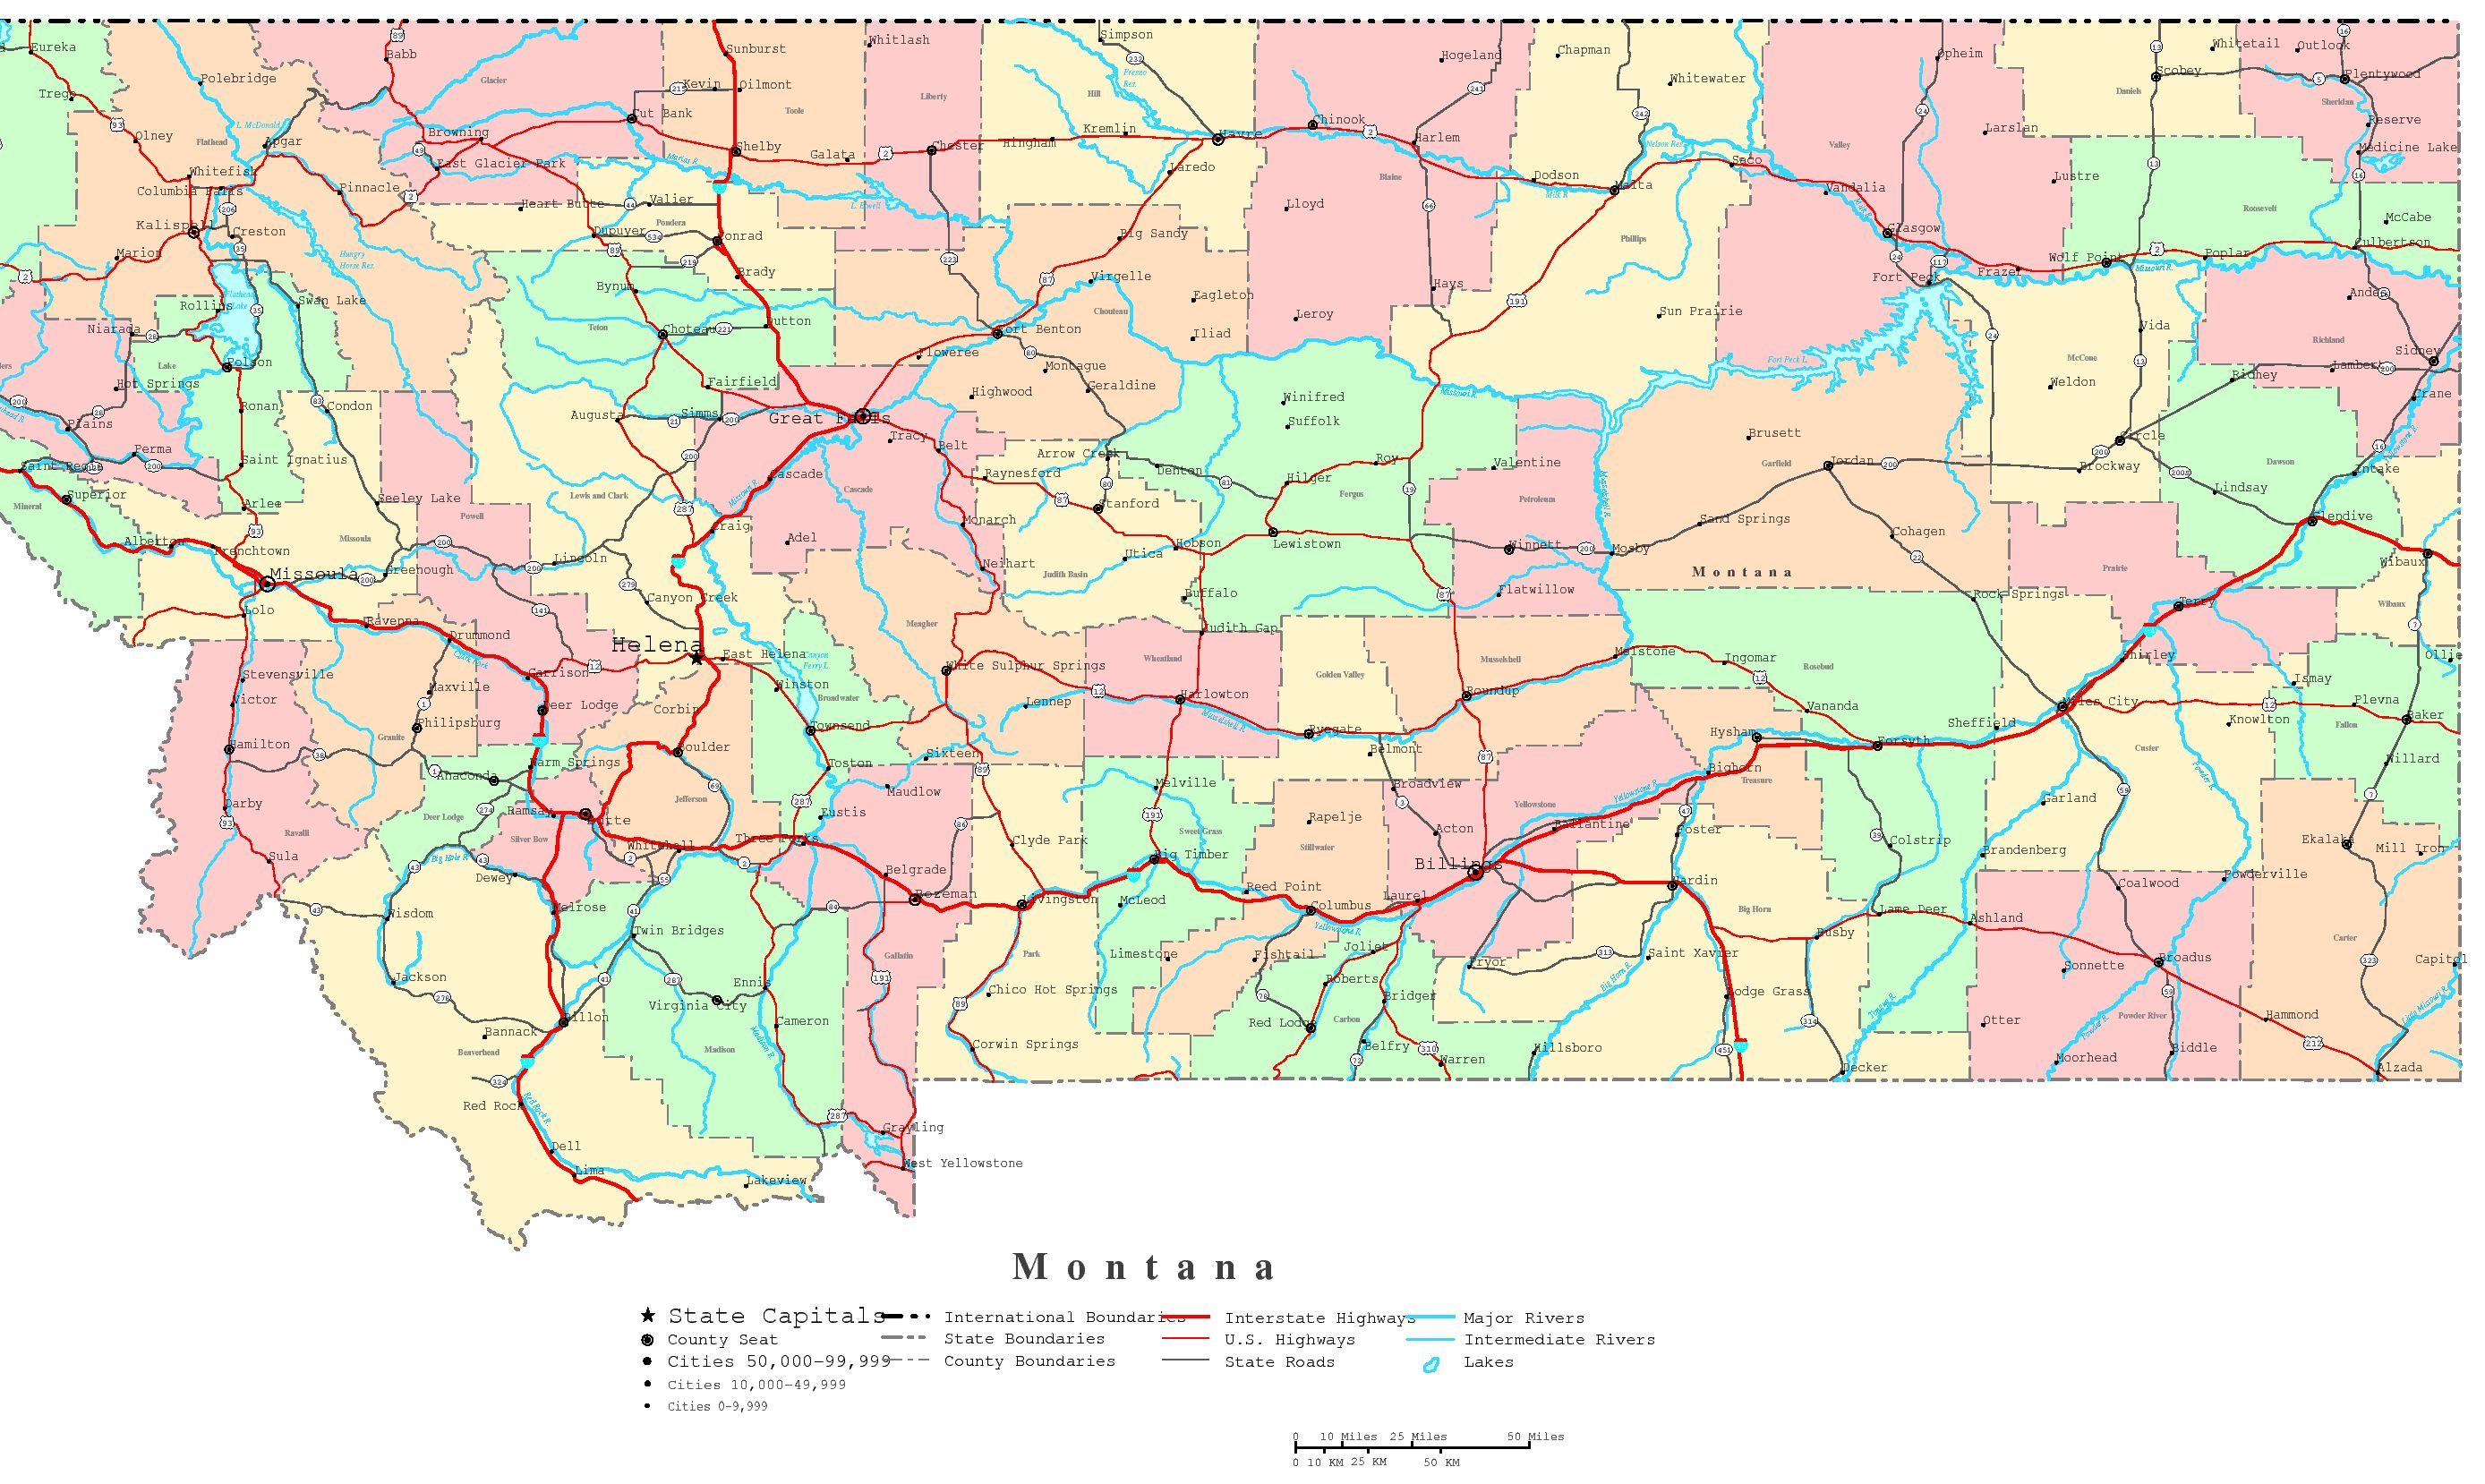 Montana Printable Map - Montana political map